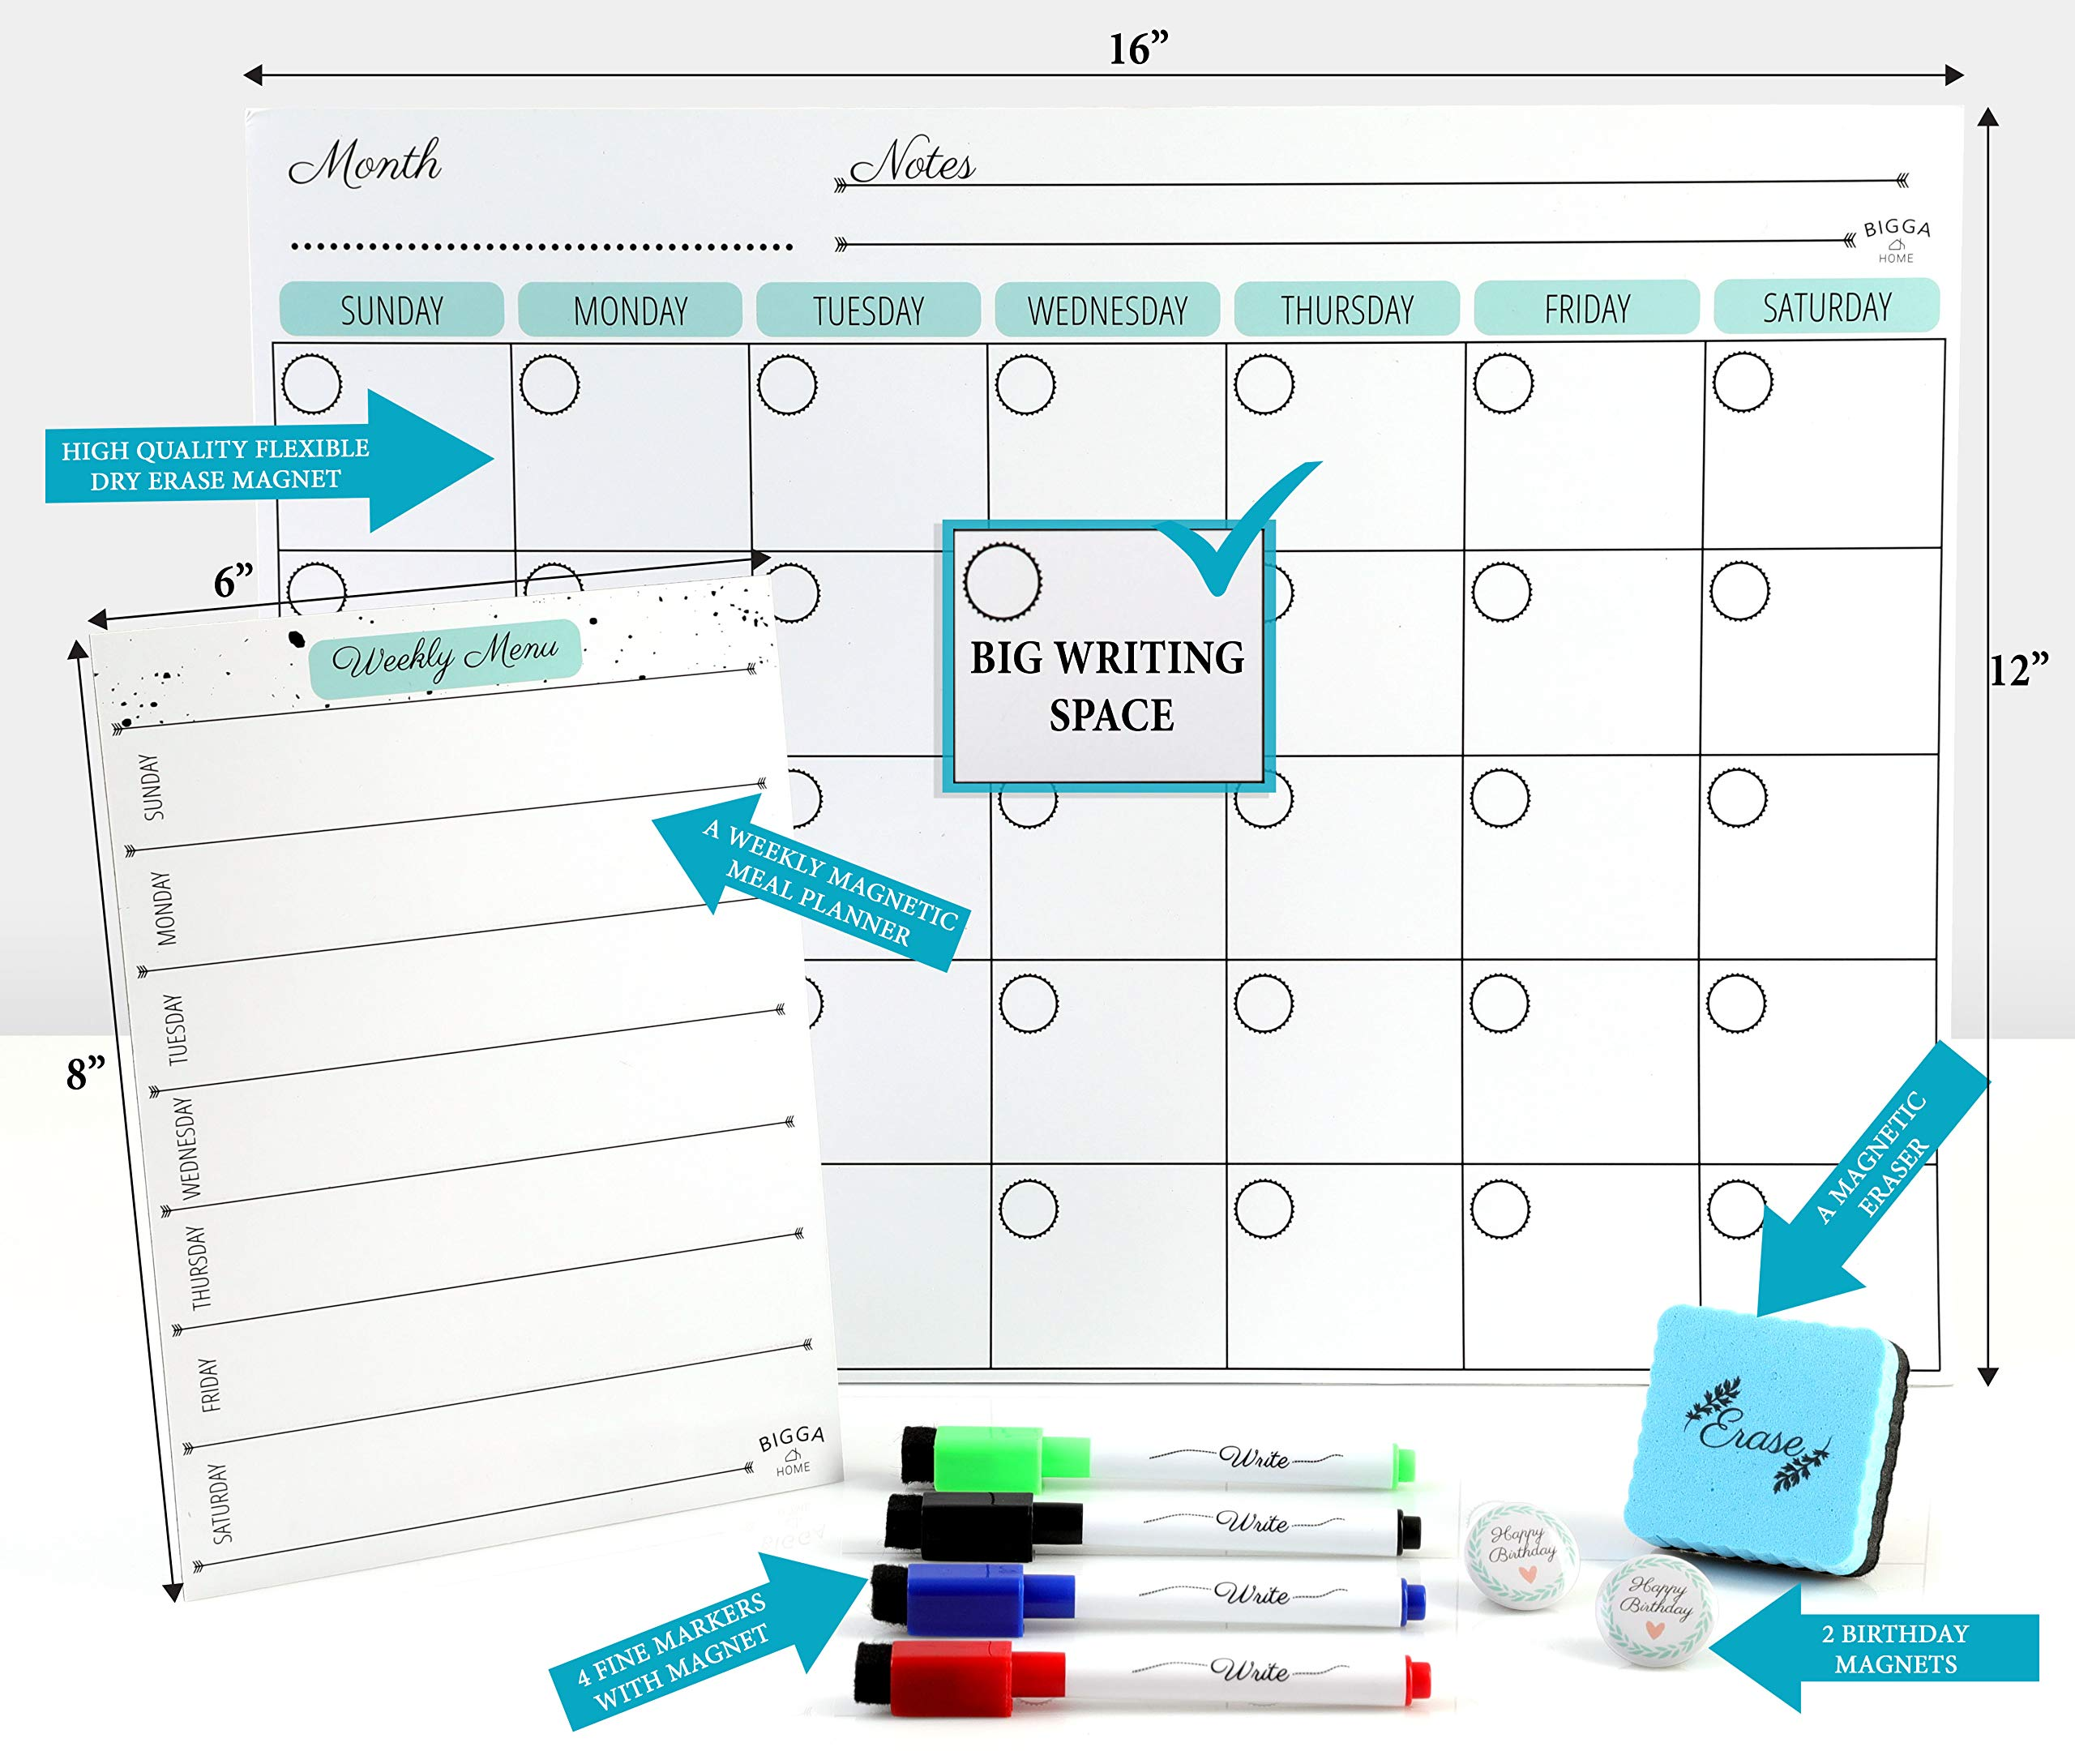 Dry Erase Monthly Magnetic Calendar Planner Set, White Board W/Extra Meal Planner, for Kitchen Refrigerator, Flexible, a Highly Designed Stiff Box for Home or Office. White, 16''x12''. by BIGGAHOME by Bigga Home (Image #3)